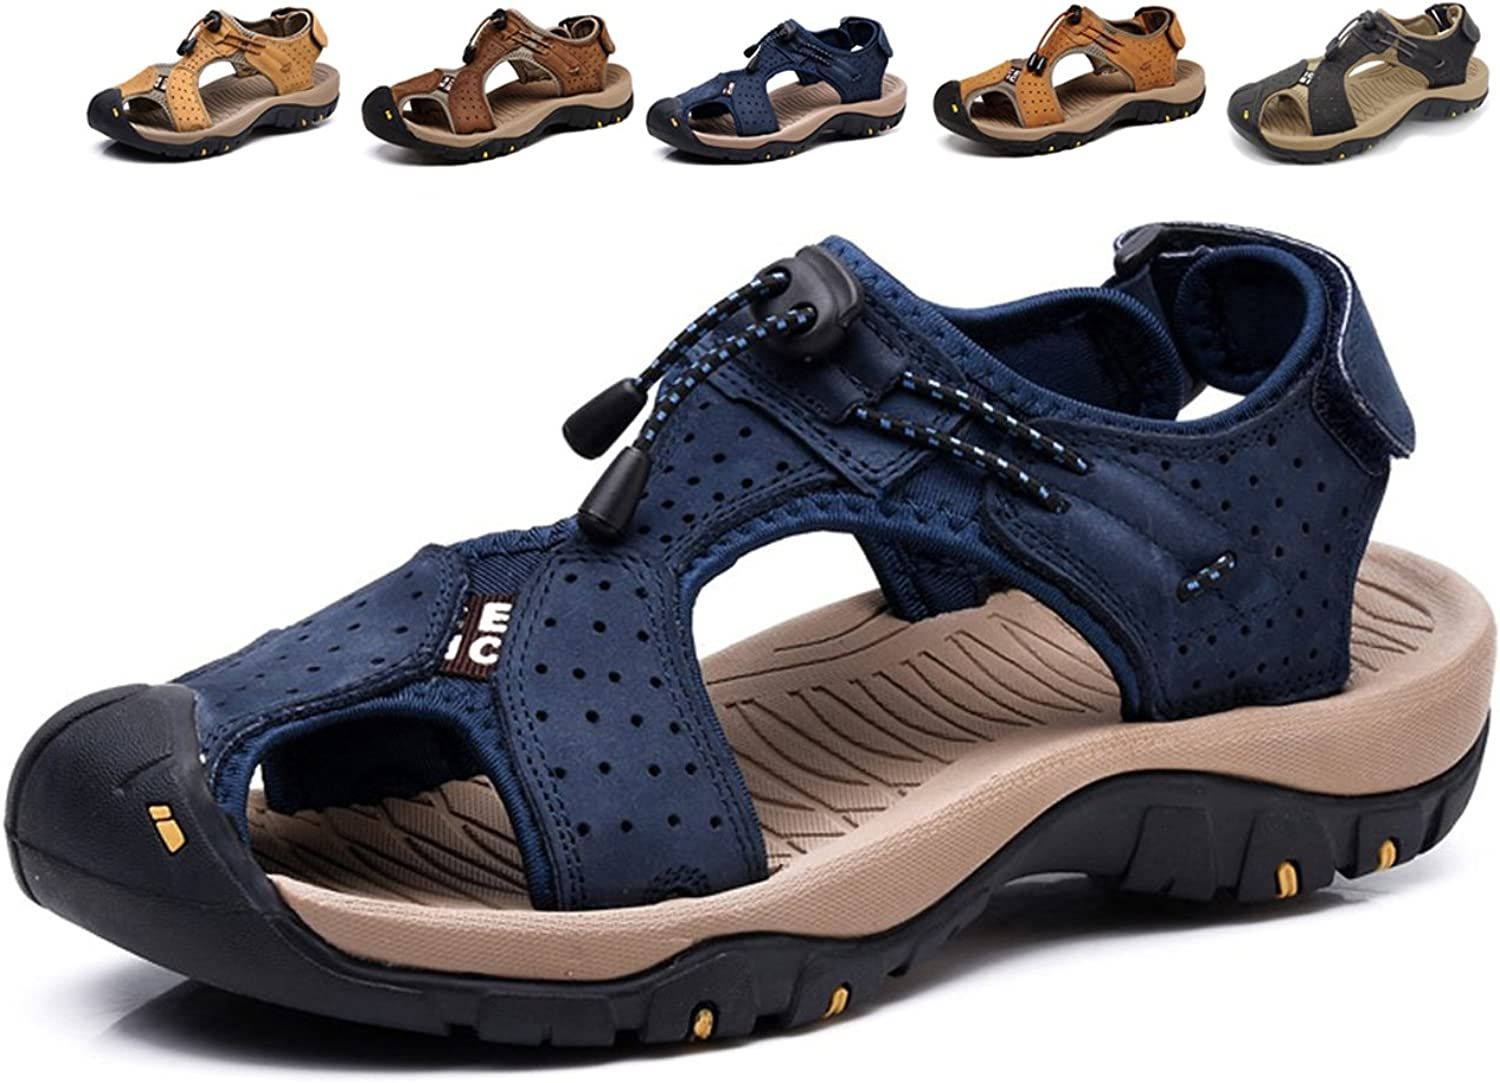 Summer New Outdoor Men's Beach shoes Leather Casual shoes Korean Breathable Wxposed Toe Leather Sandals Baotou Non-Slip